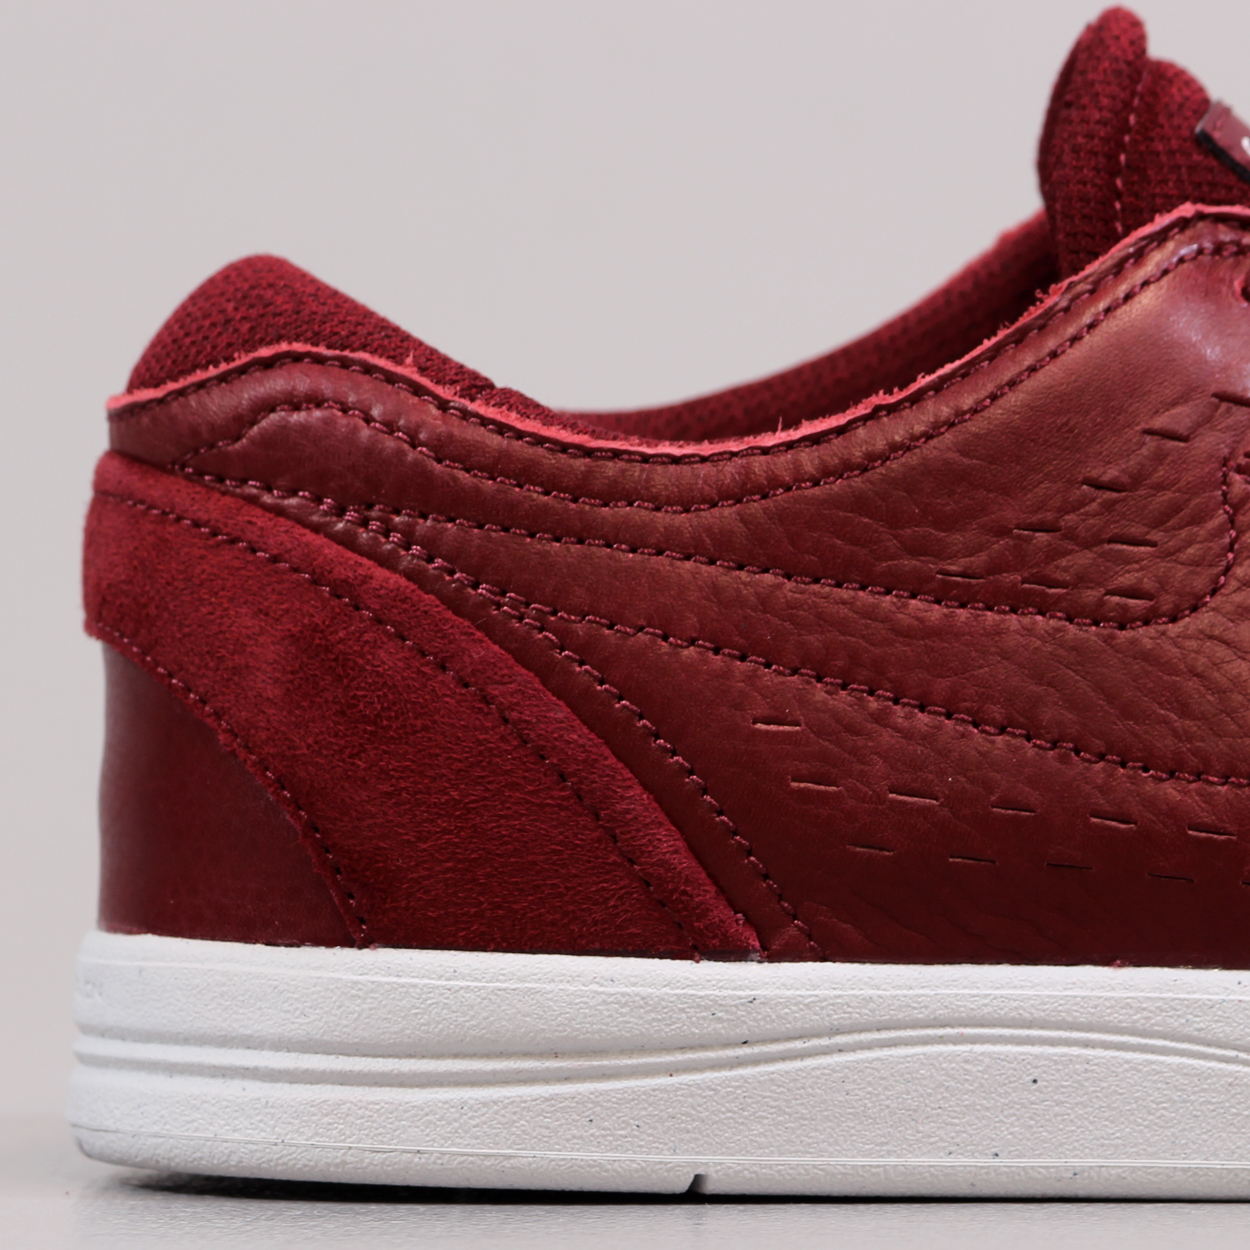 info for 612ca 02534 Signature Eric Koston Premium Skate shoe from Nike SB for a smart look to  skate or save for a special occasion.